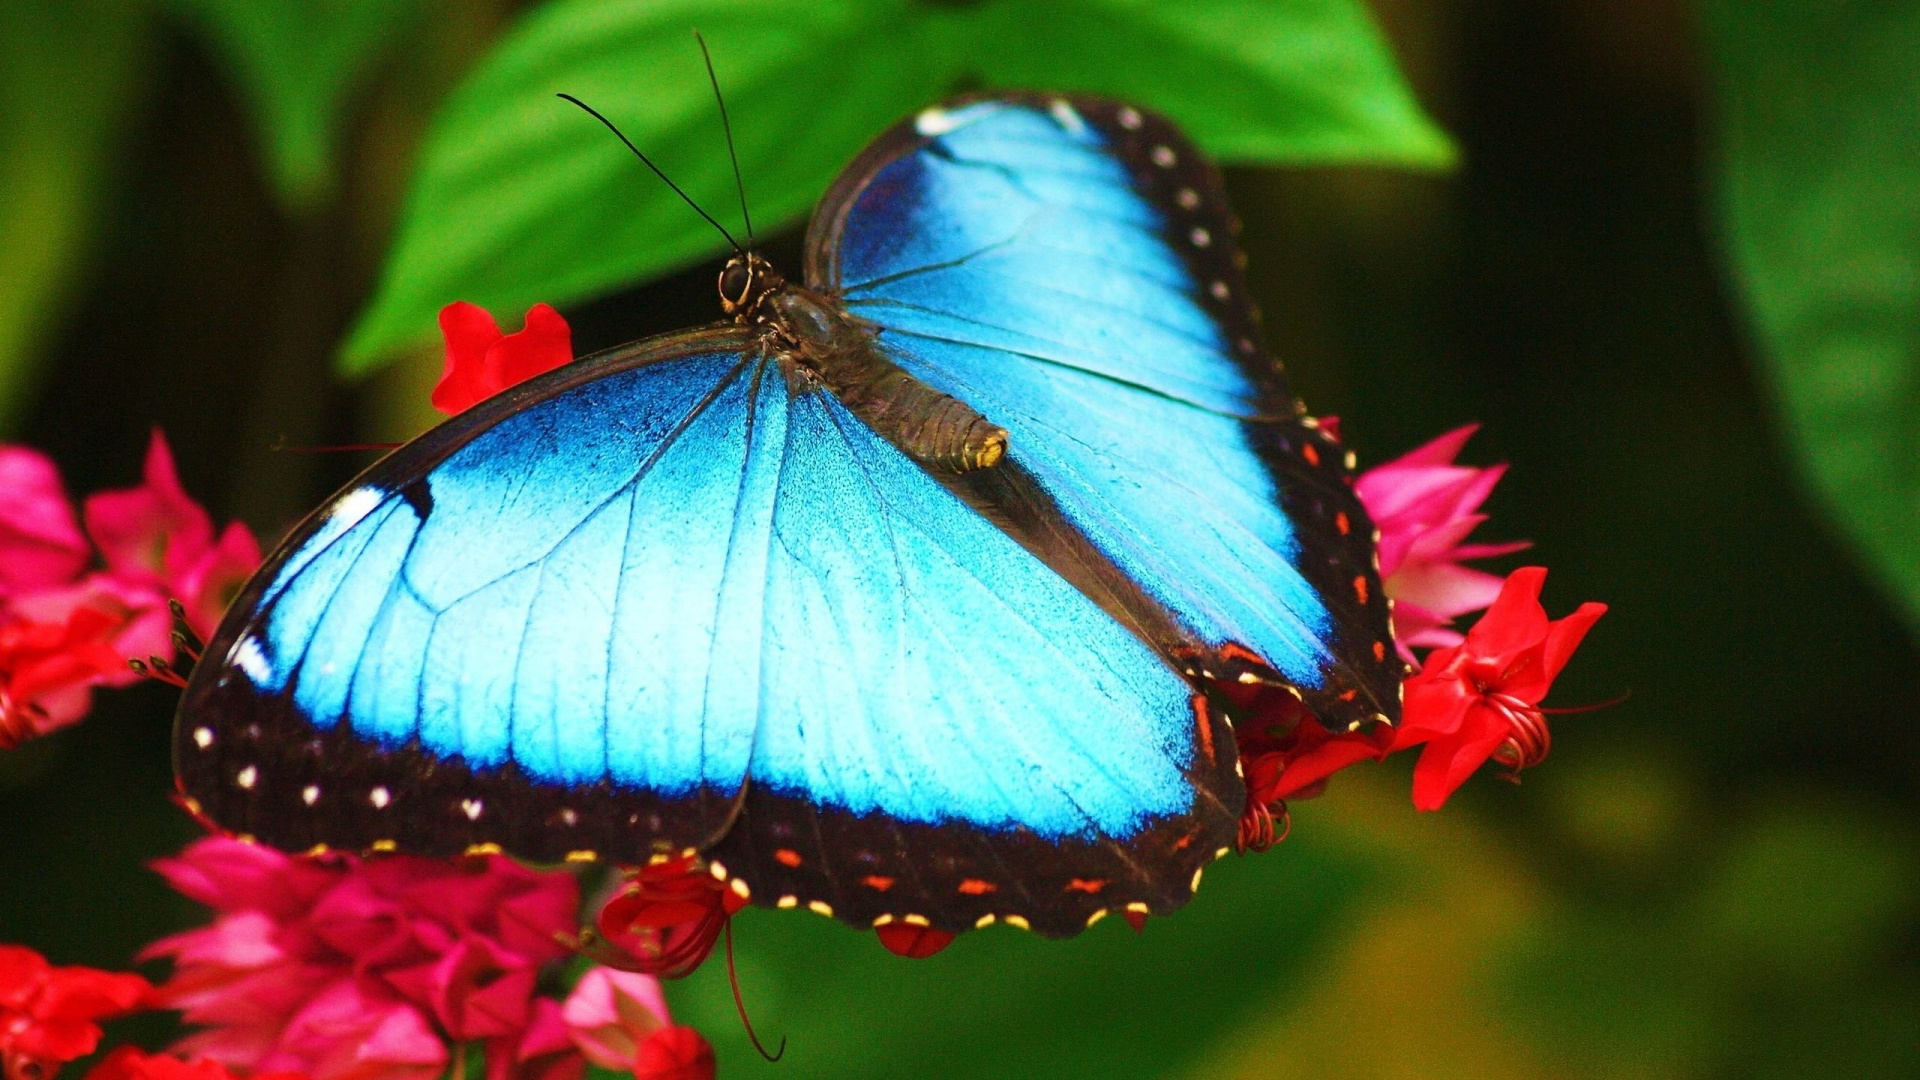 Butterfly Hd wallpaper   711753 1920x1080